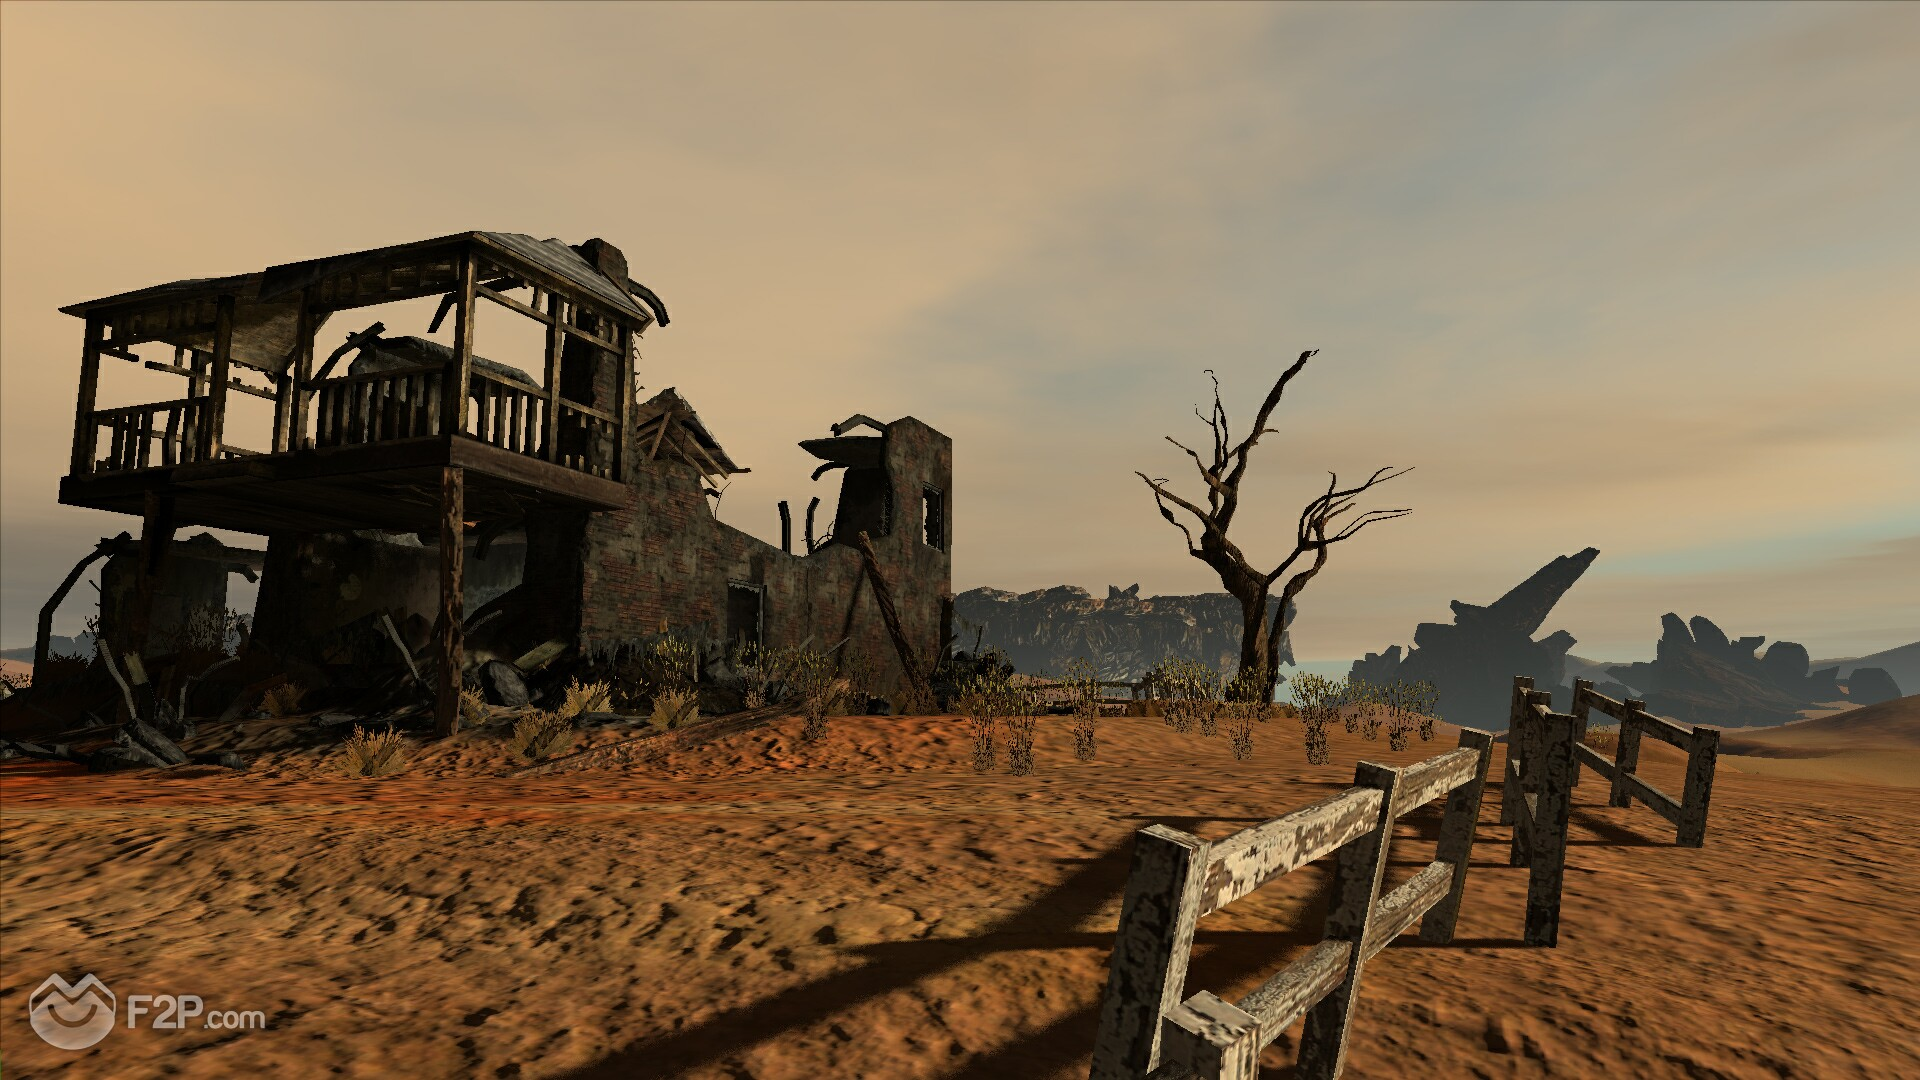 Click image for larger version. Name:	grimlandsfp1.jpg Views:	186 Size:	422.4 KB ID:	5815